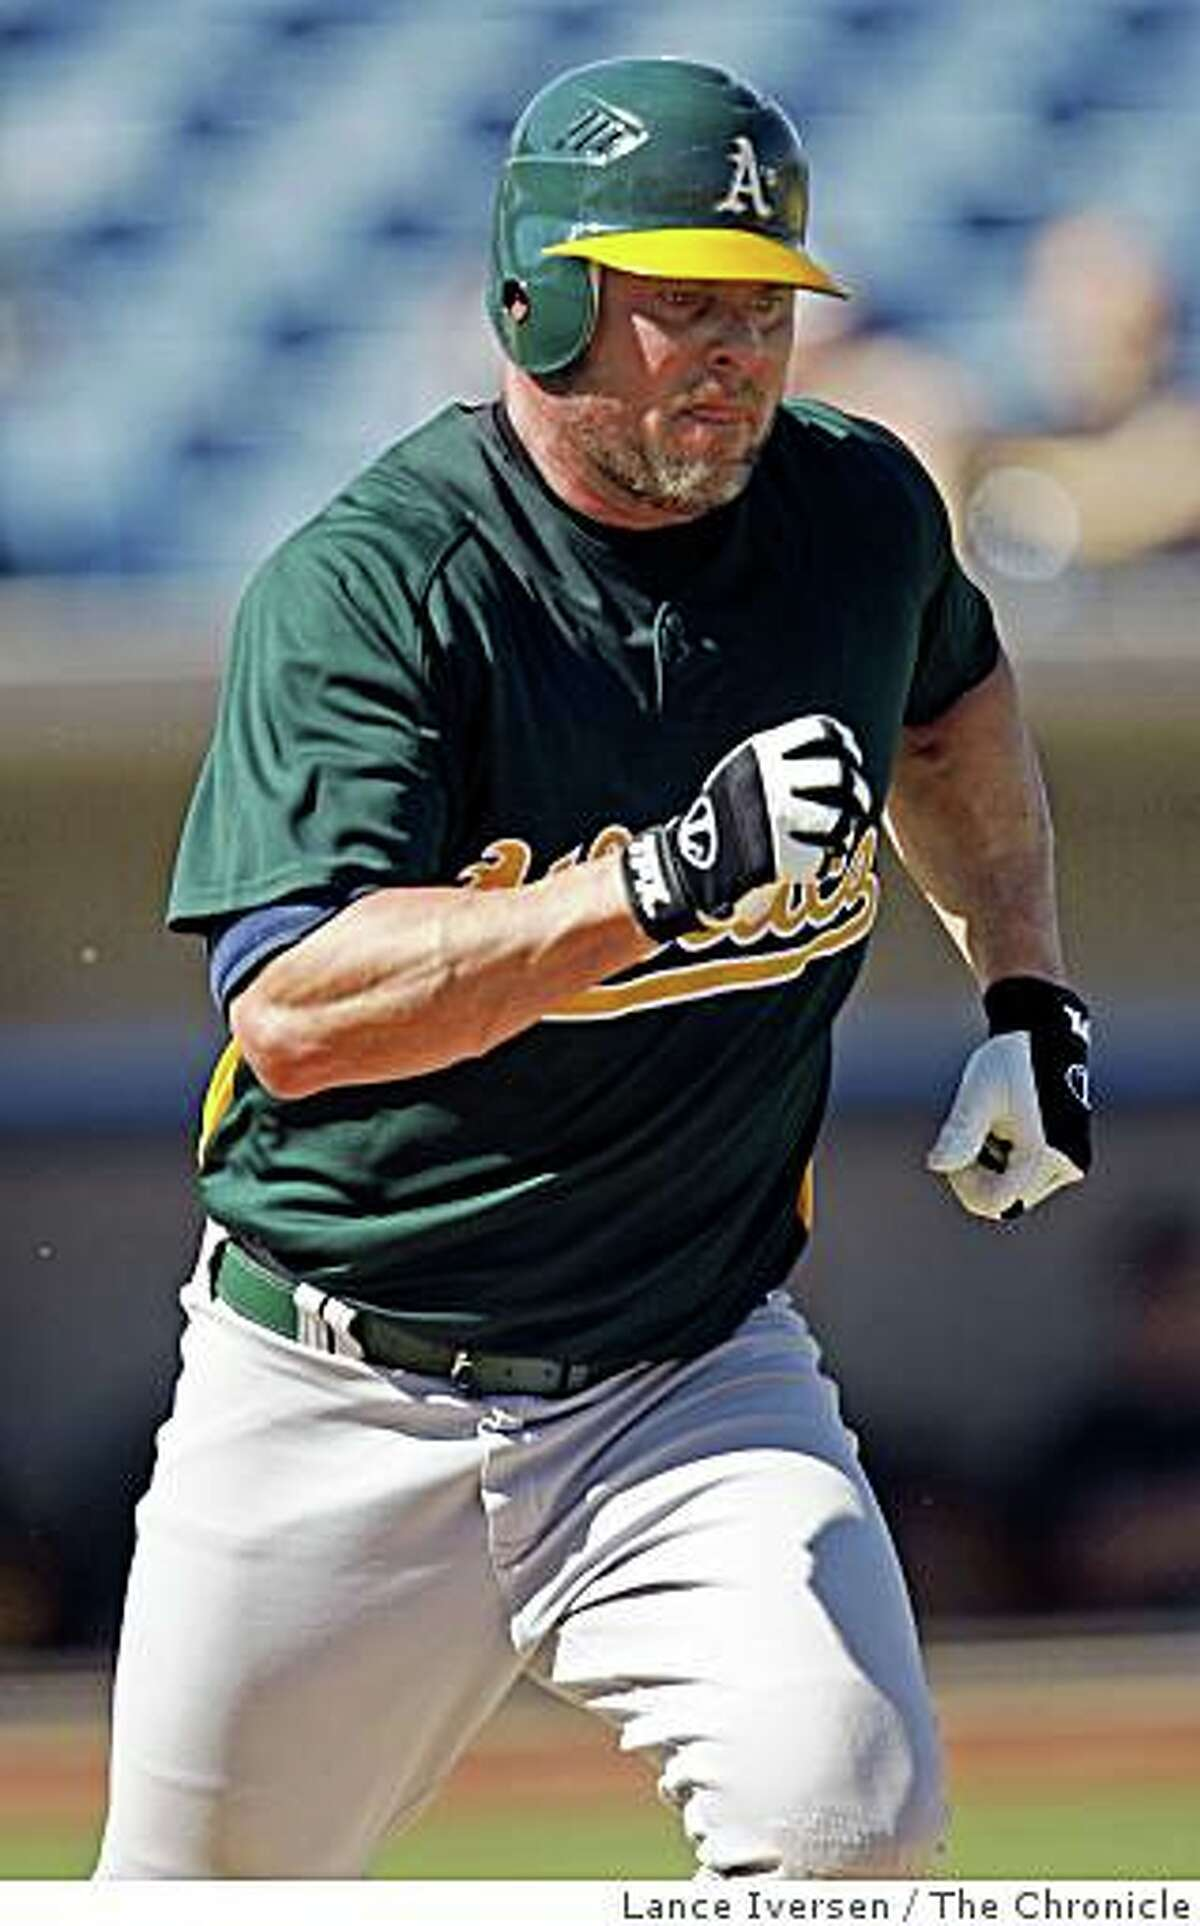 Oakland Athletics Jason Giambi runs down to first base after grownding out during the A's first Spring Training game with the Milwaukee Brewers at Maryvale Baseball Park in Phoenix Arizona Wednesday, February 25, 2009.